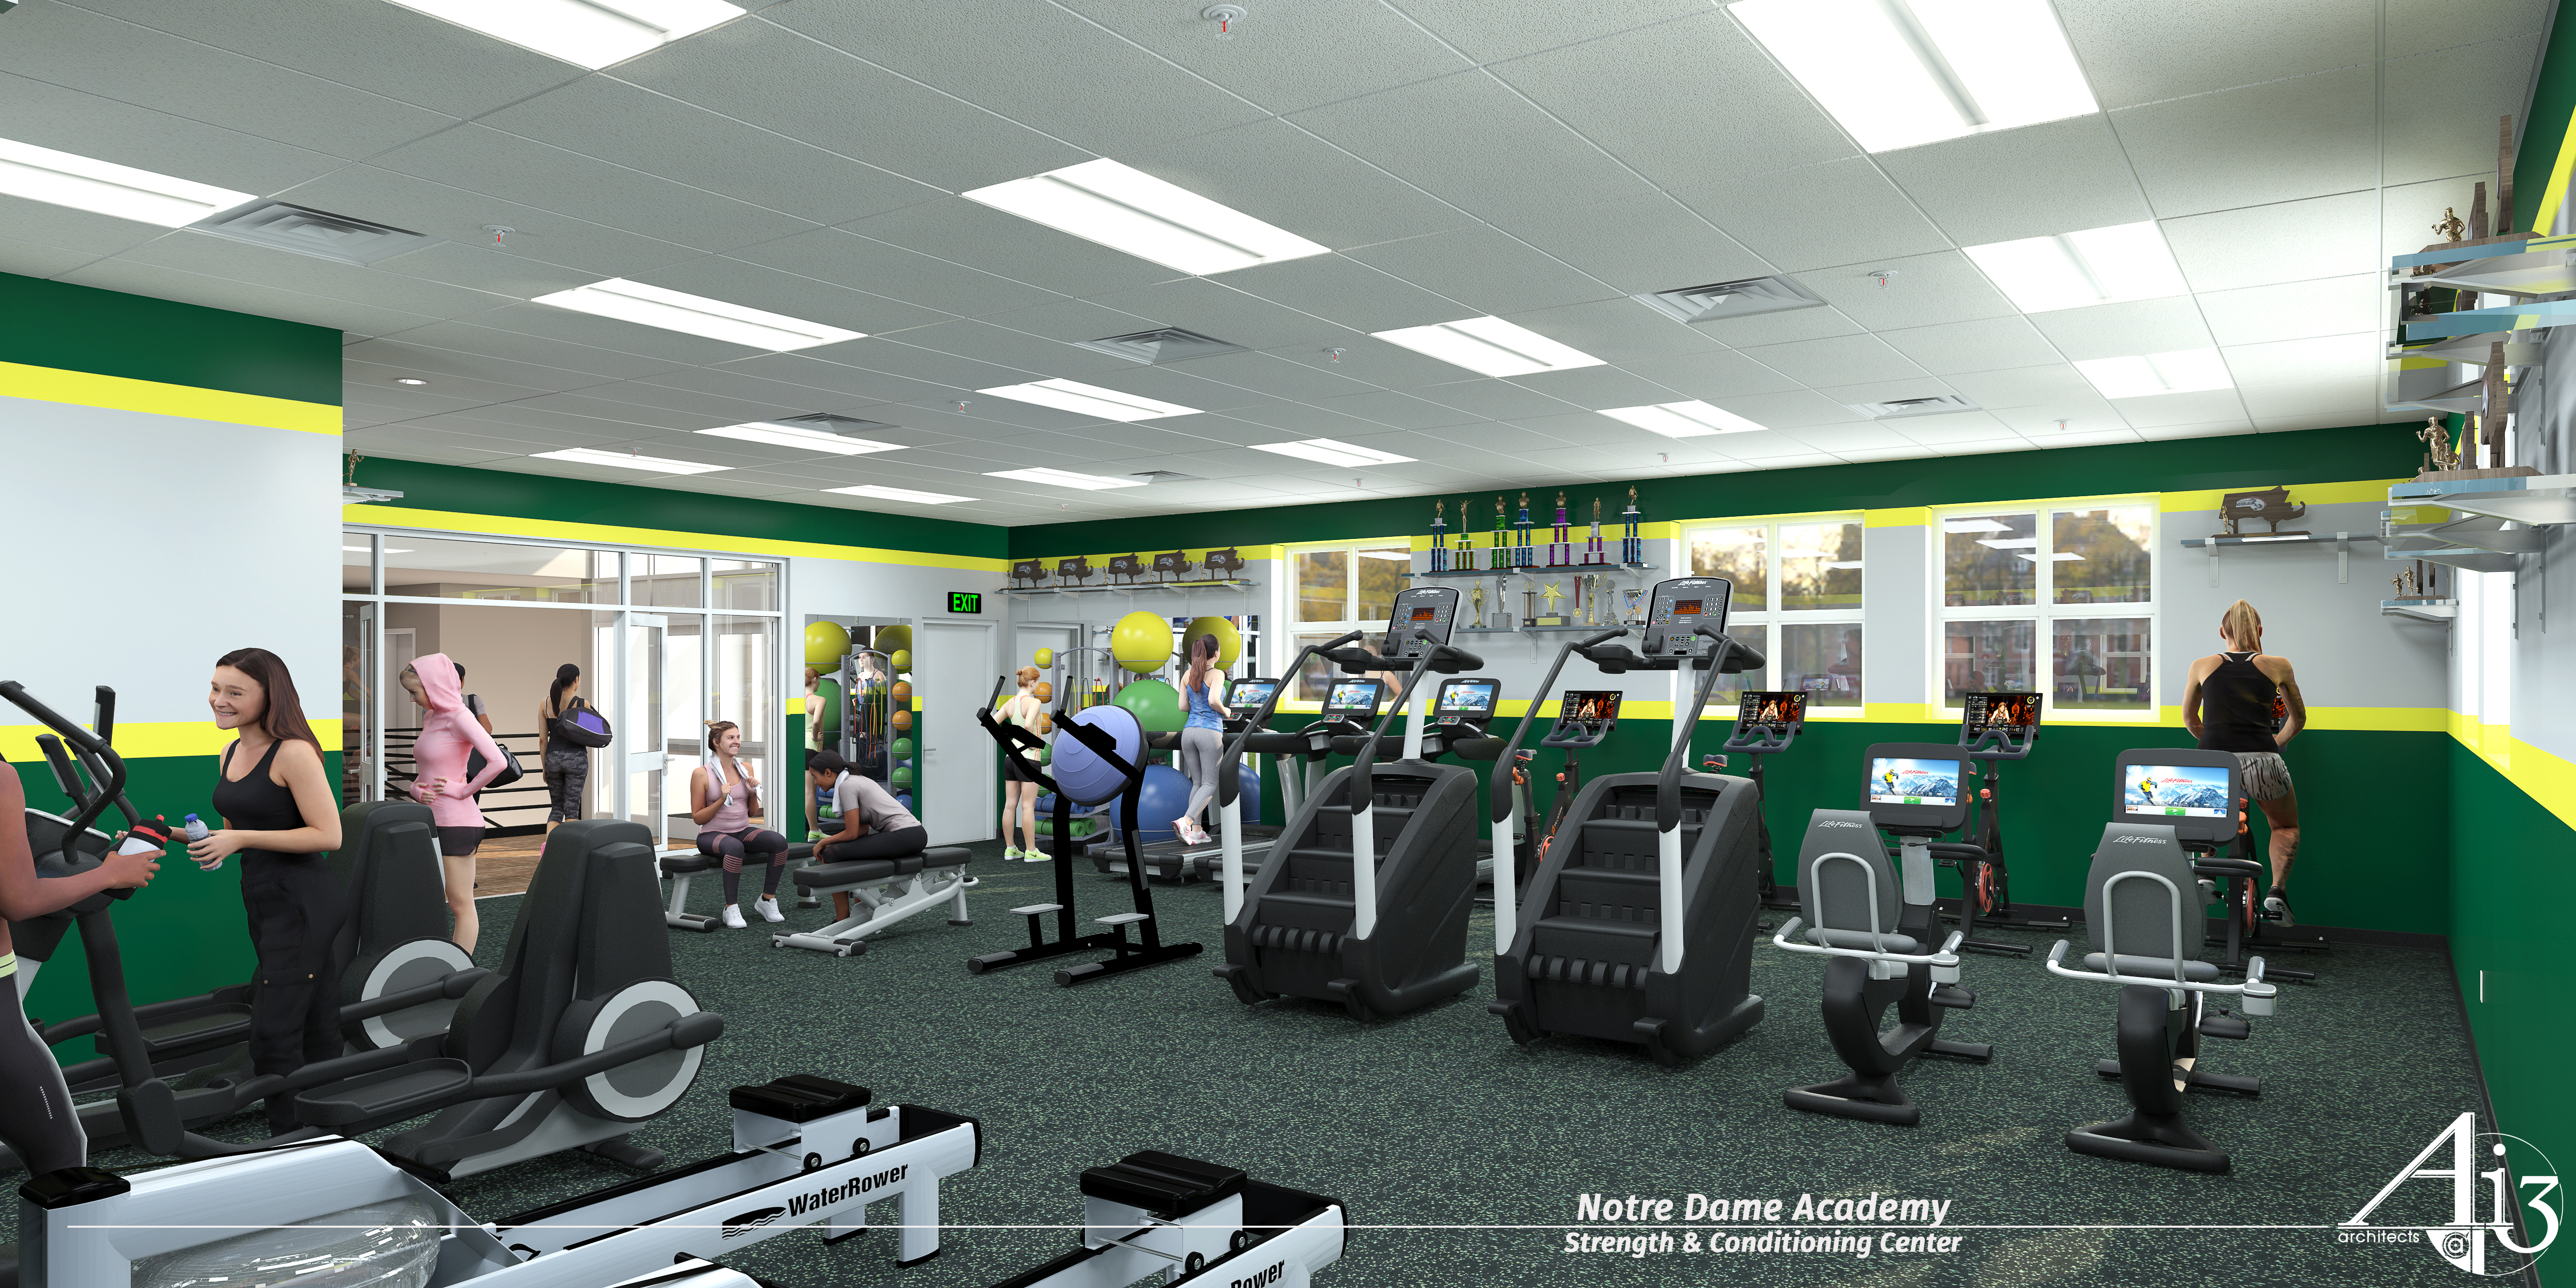 Notre Dame Academy Receives $85K Grant for Athletic Center Renovations and Strength and Conditioning Center